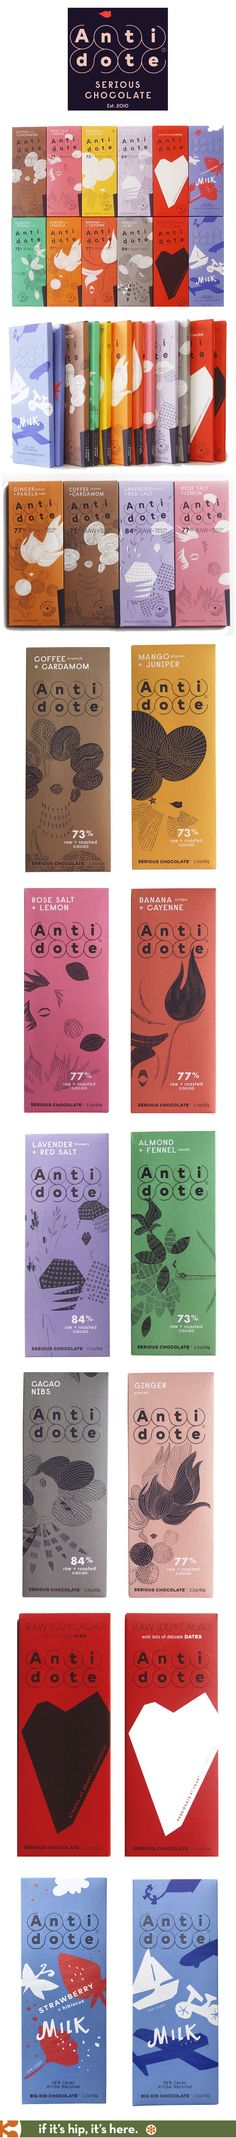 All the nicely designed wrappers for Antidote Chocolate Bars